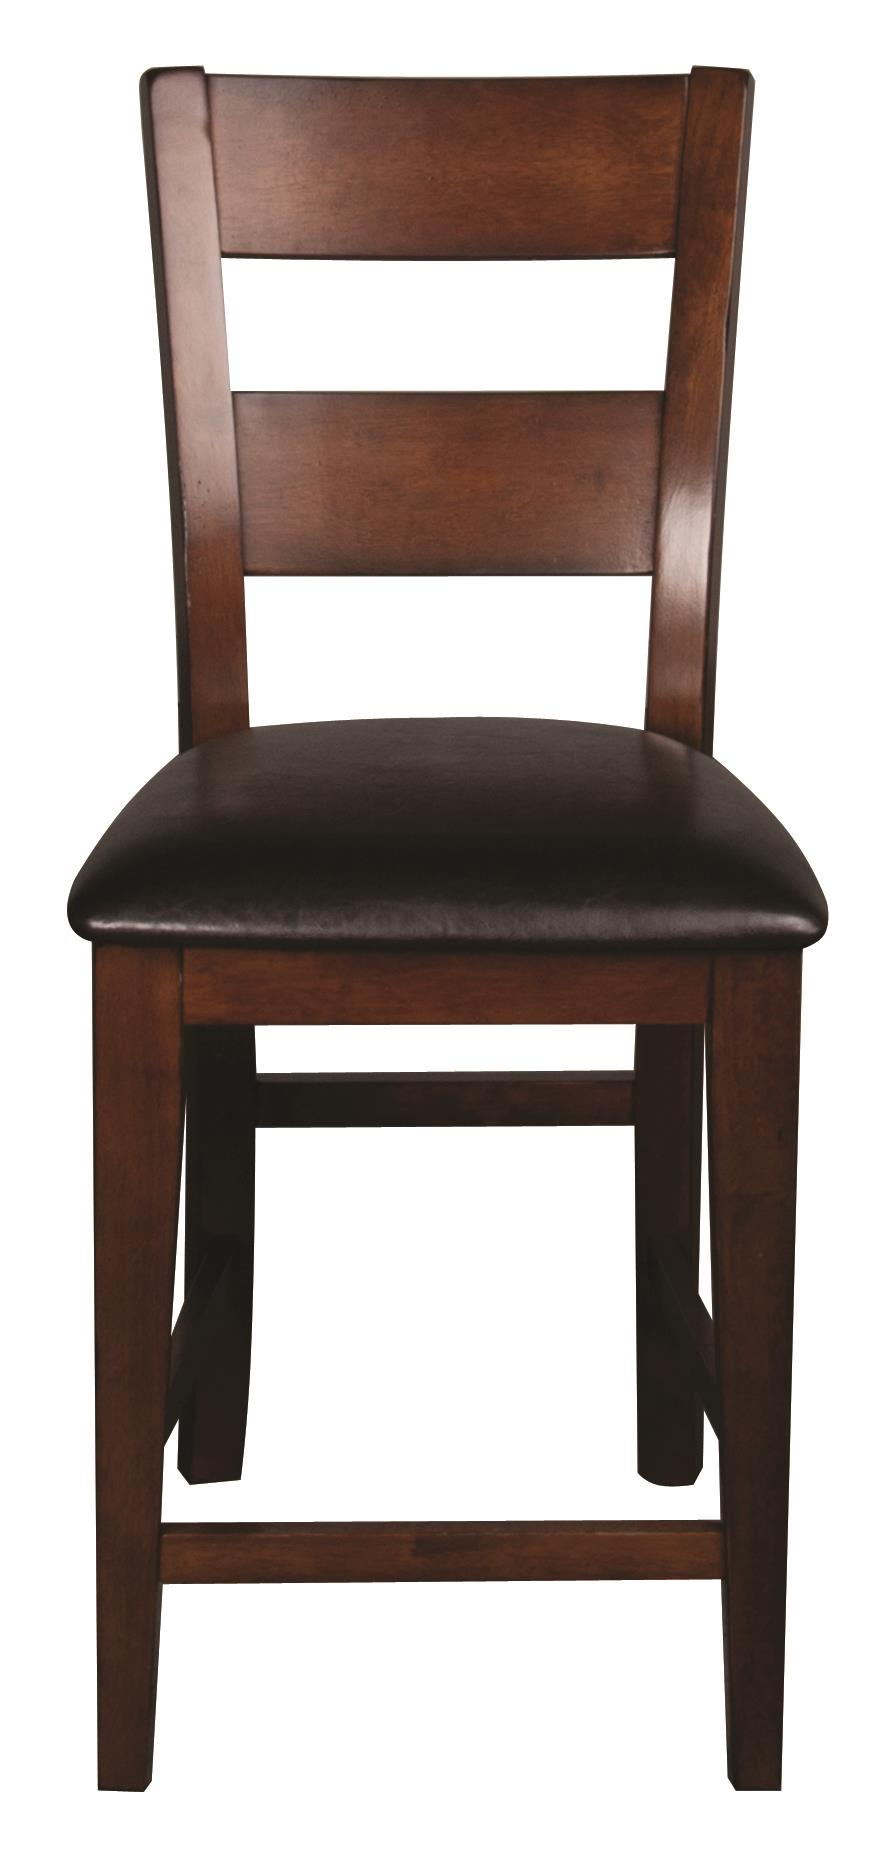 Melbourne Melbourne Barstool by Holland House at Morris Home